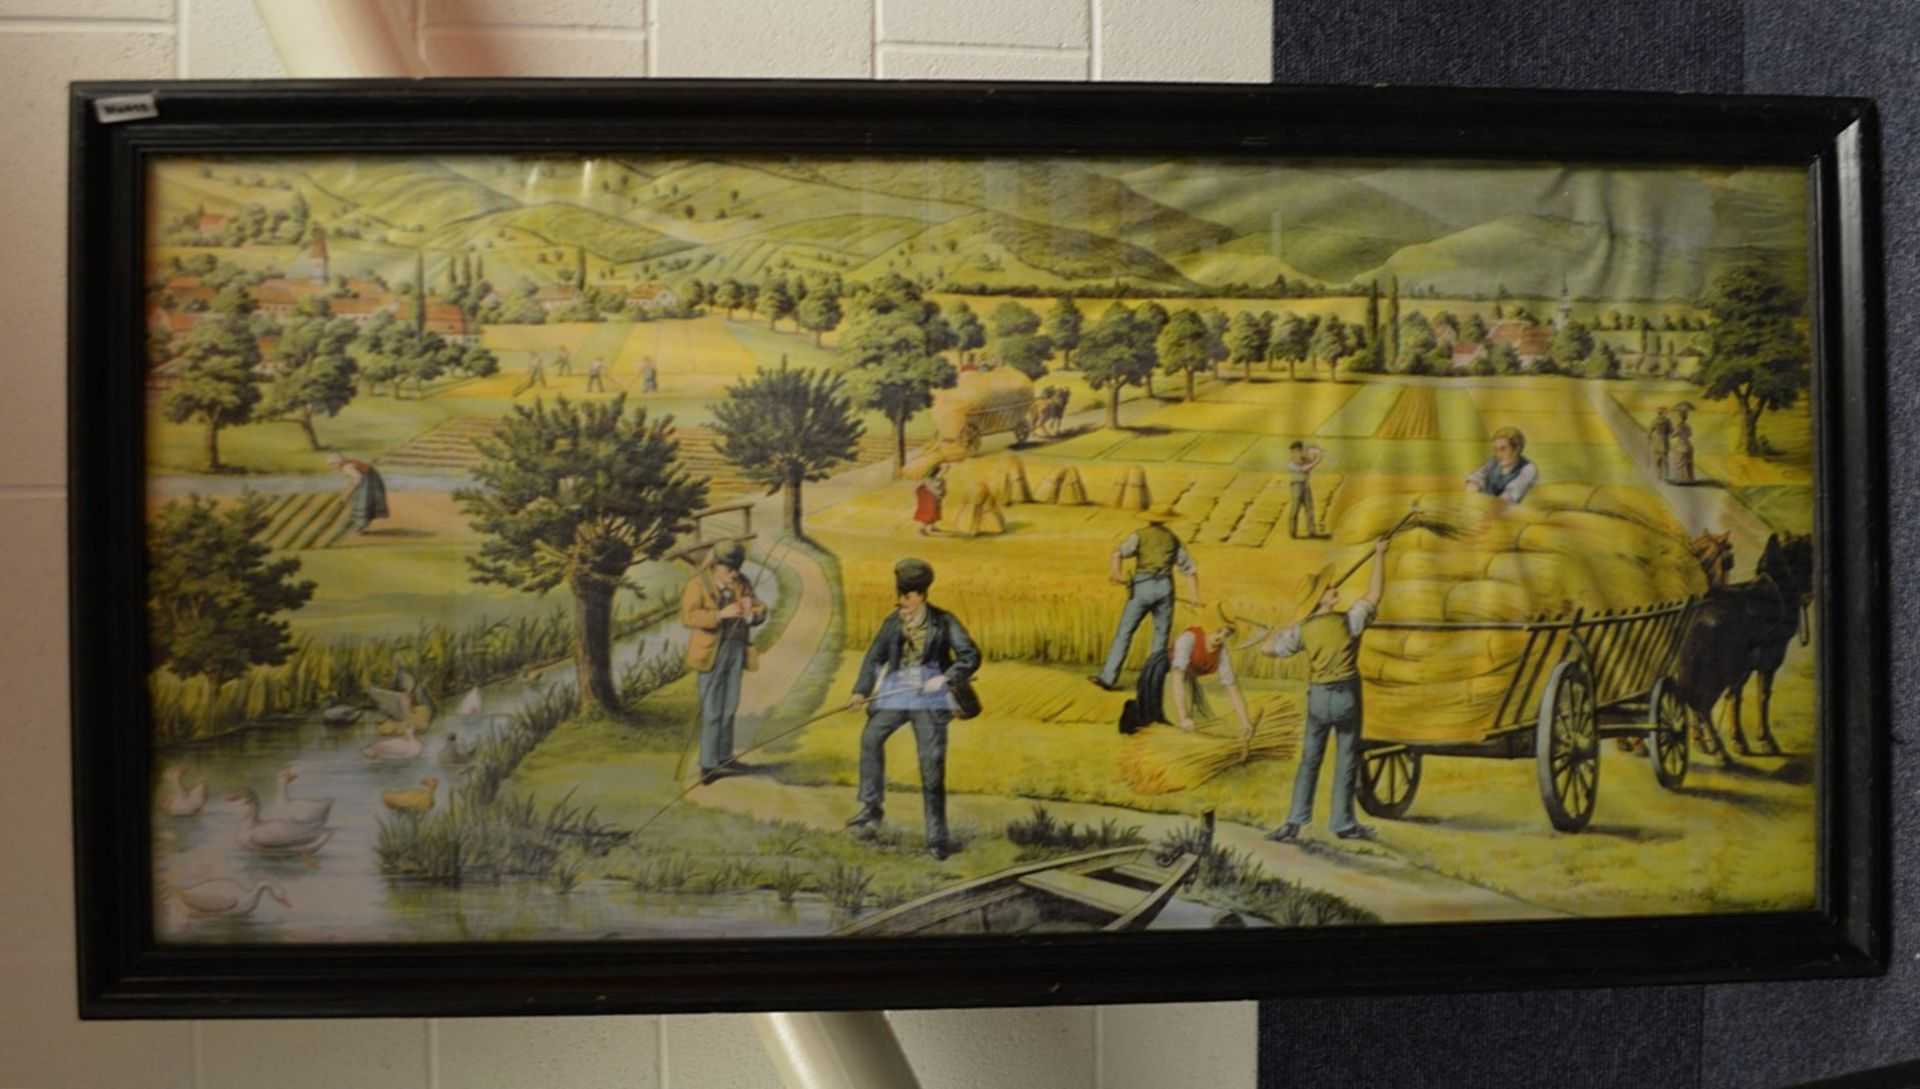 Lot 7430 - 1 x Large 1.6 Metre Long Framed Art Print Featuring A Countryside Scene - Dimensions: 162xH81xD4cm